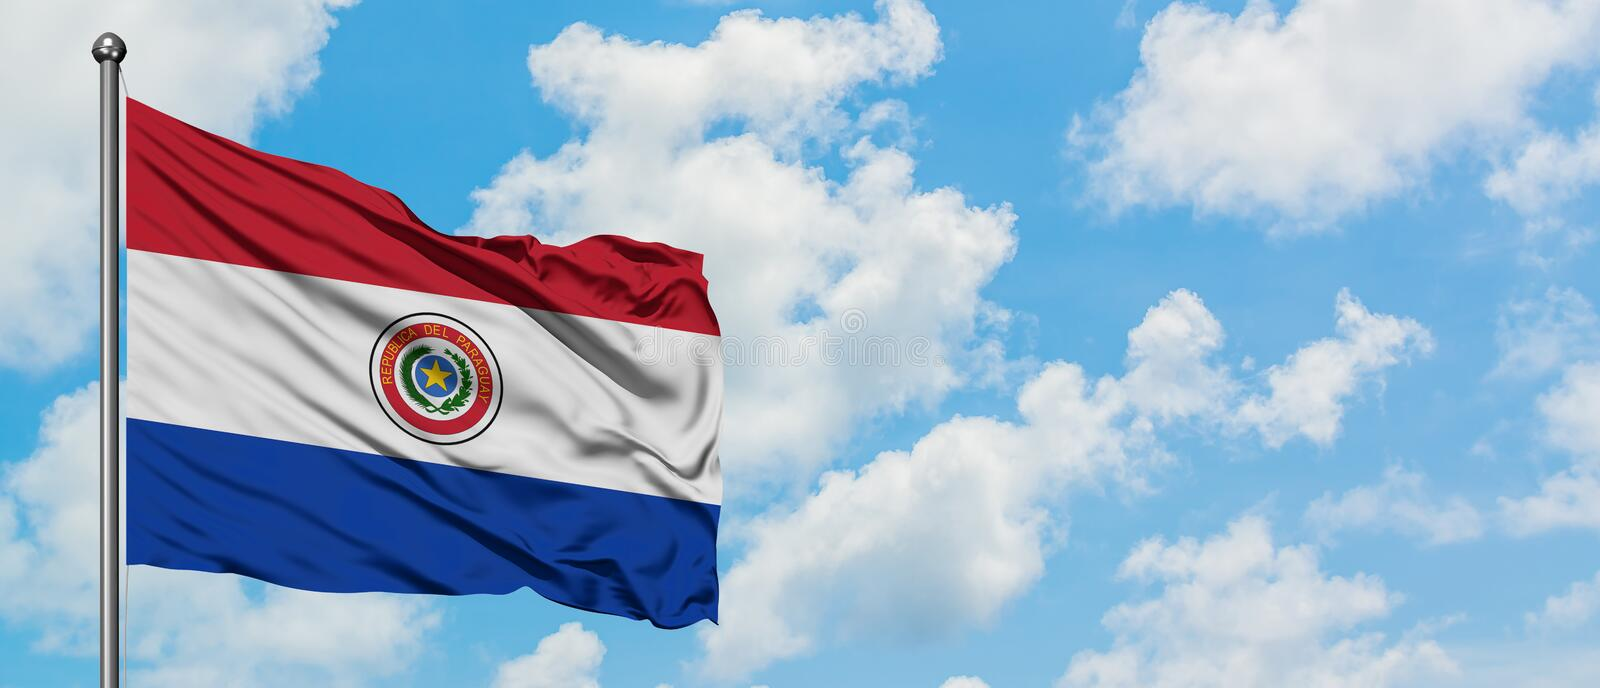 Paraguay flag waving in the wind against white cloudy blue sky. Diplomacy concept, international relations.  stock image